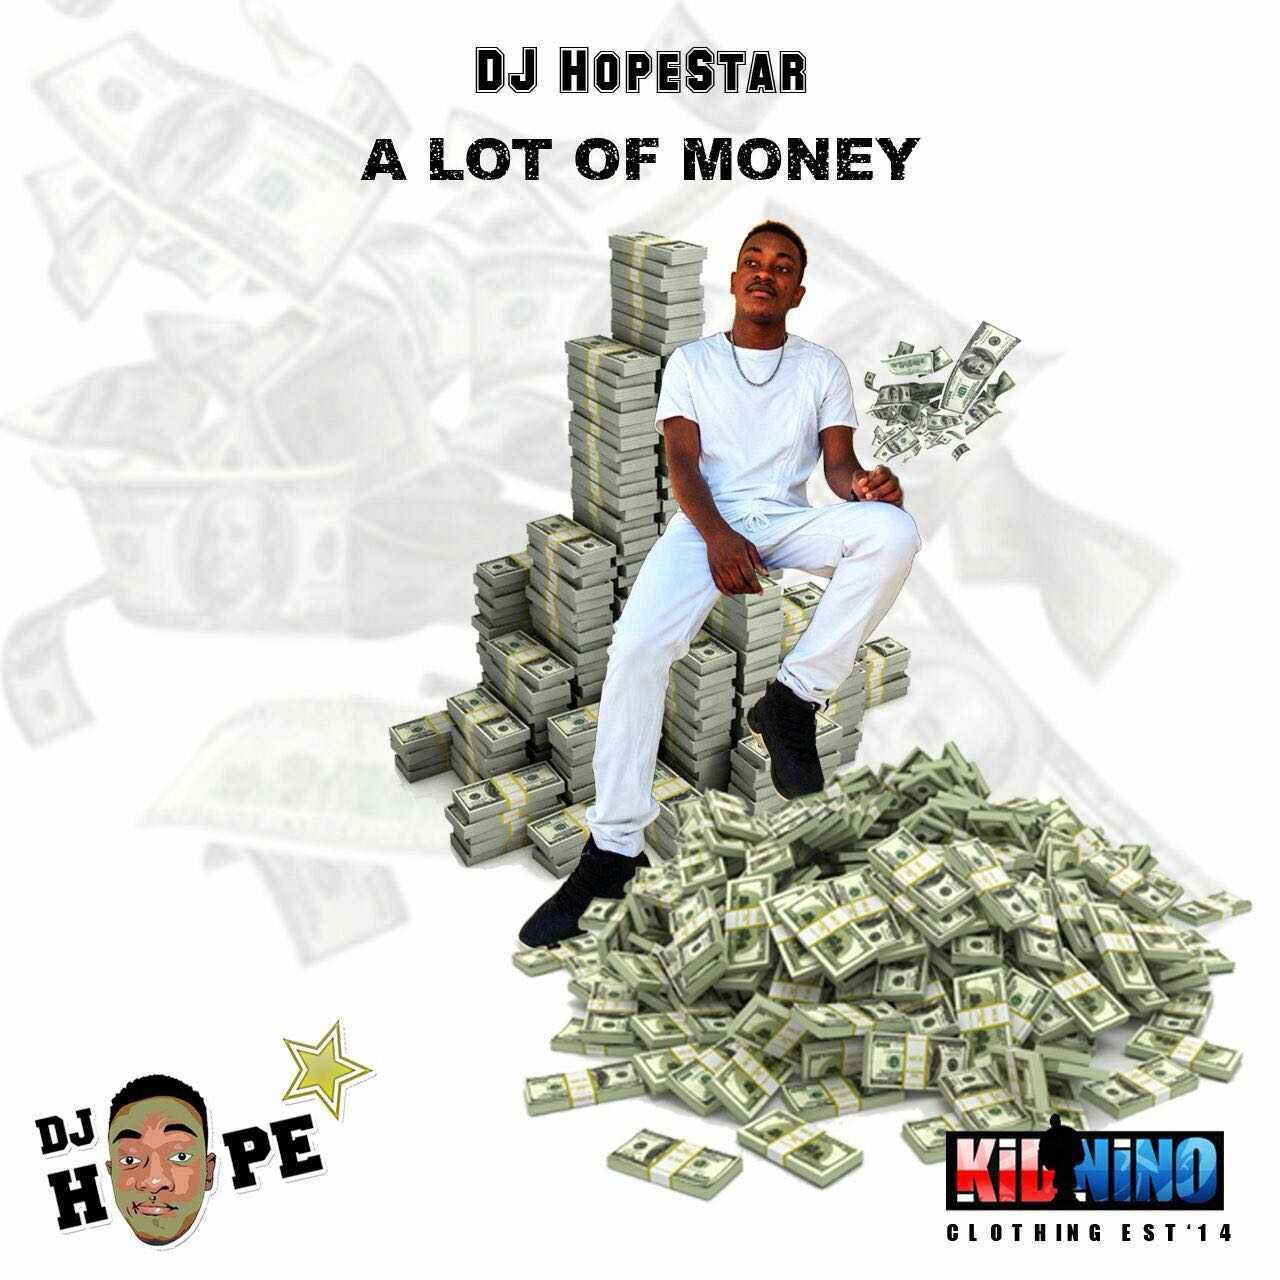 Dj HopeStar - A lot of Money  (Lyrics)